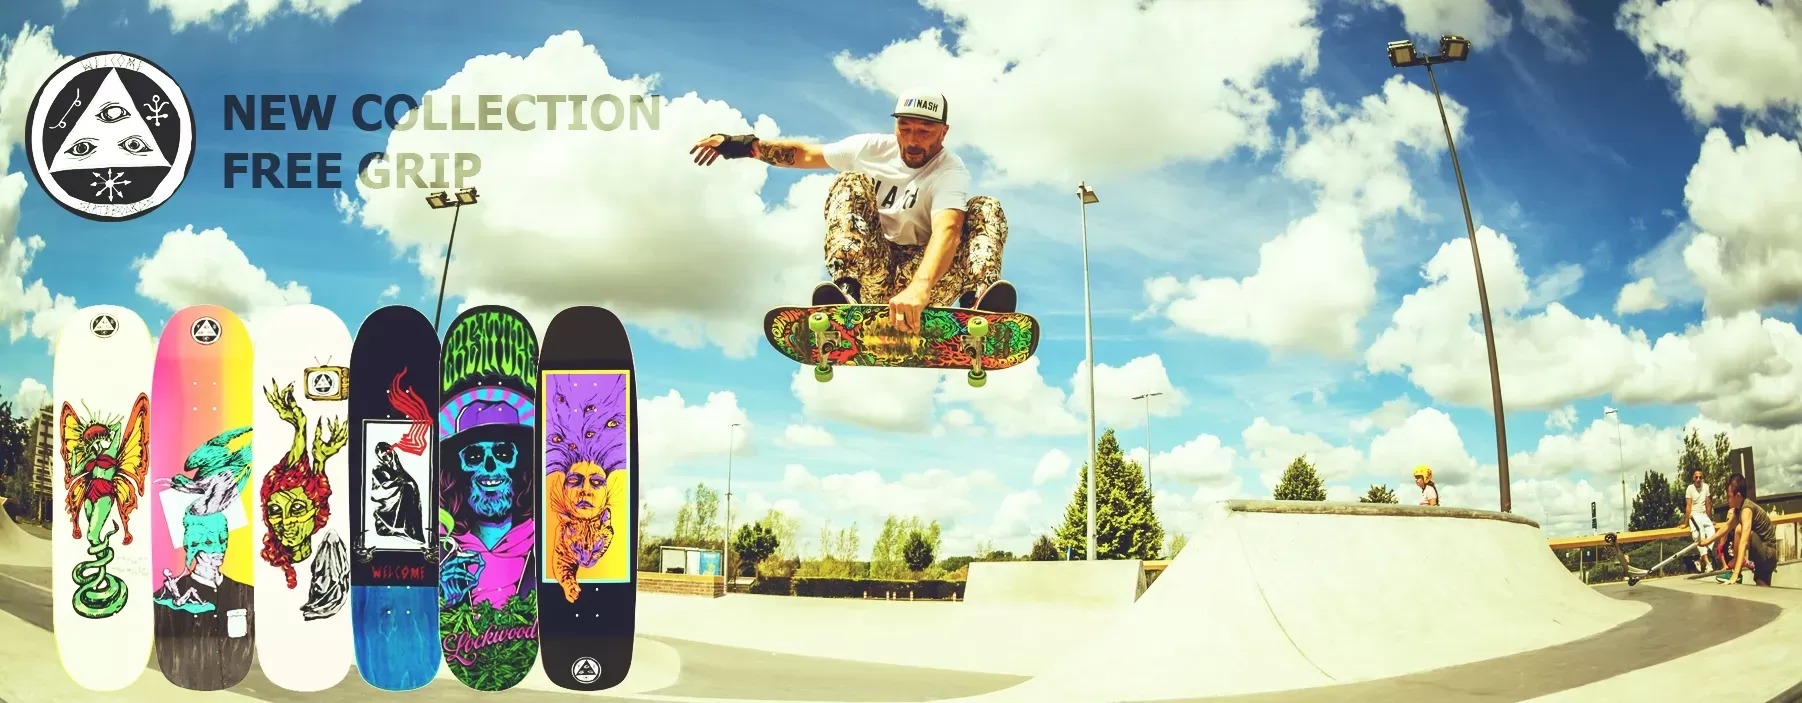 Skateboard New Collection